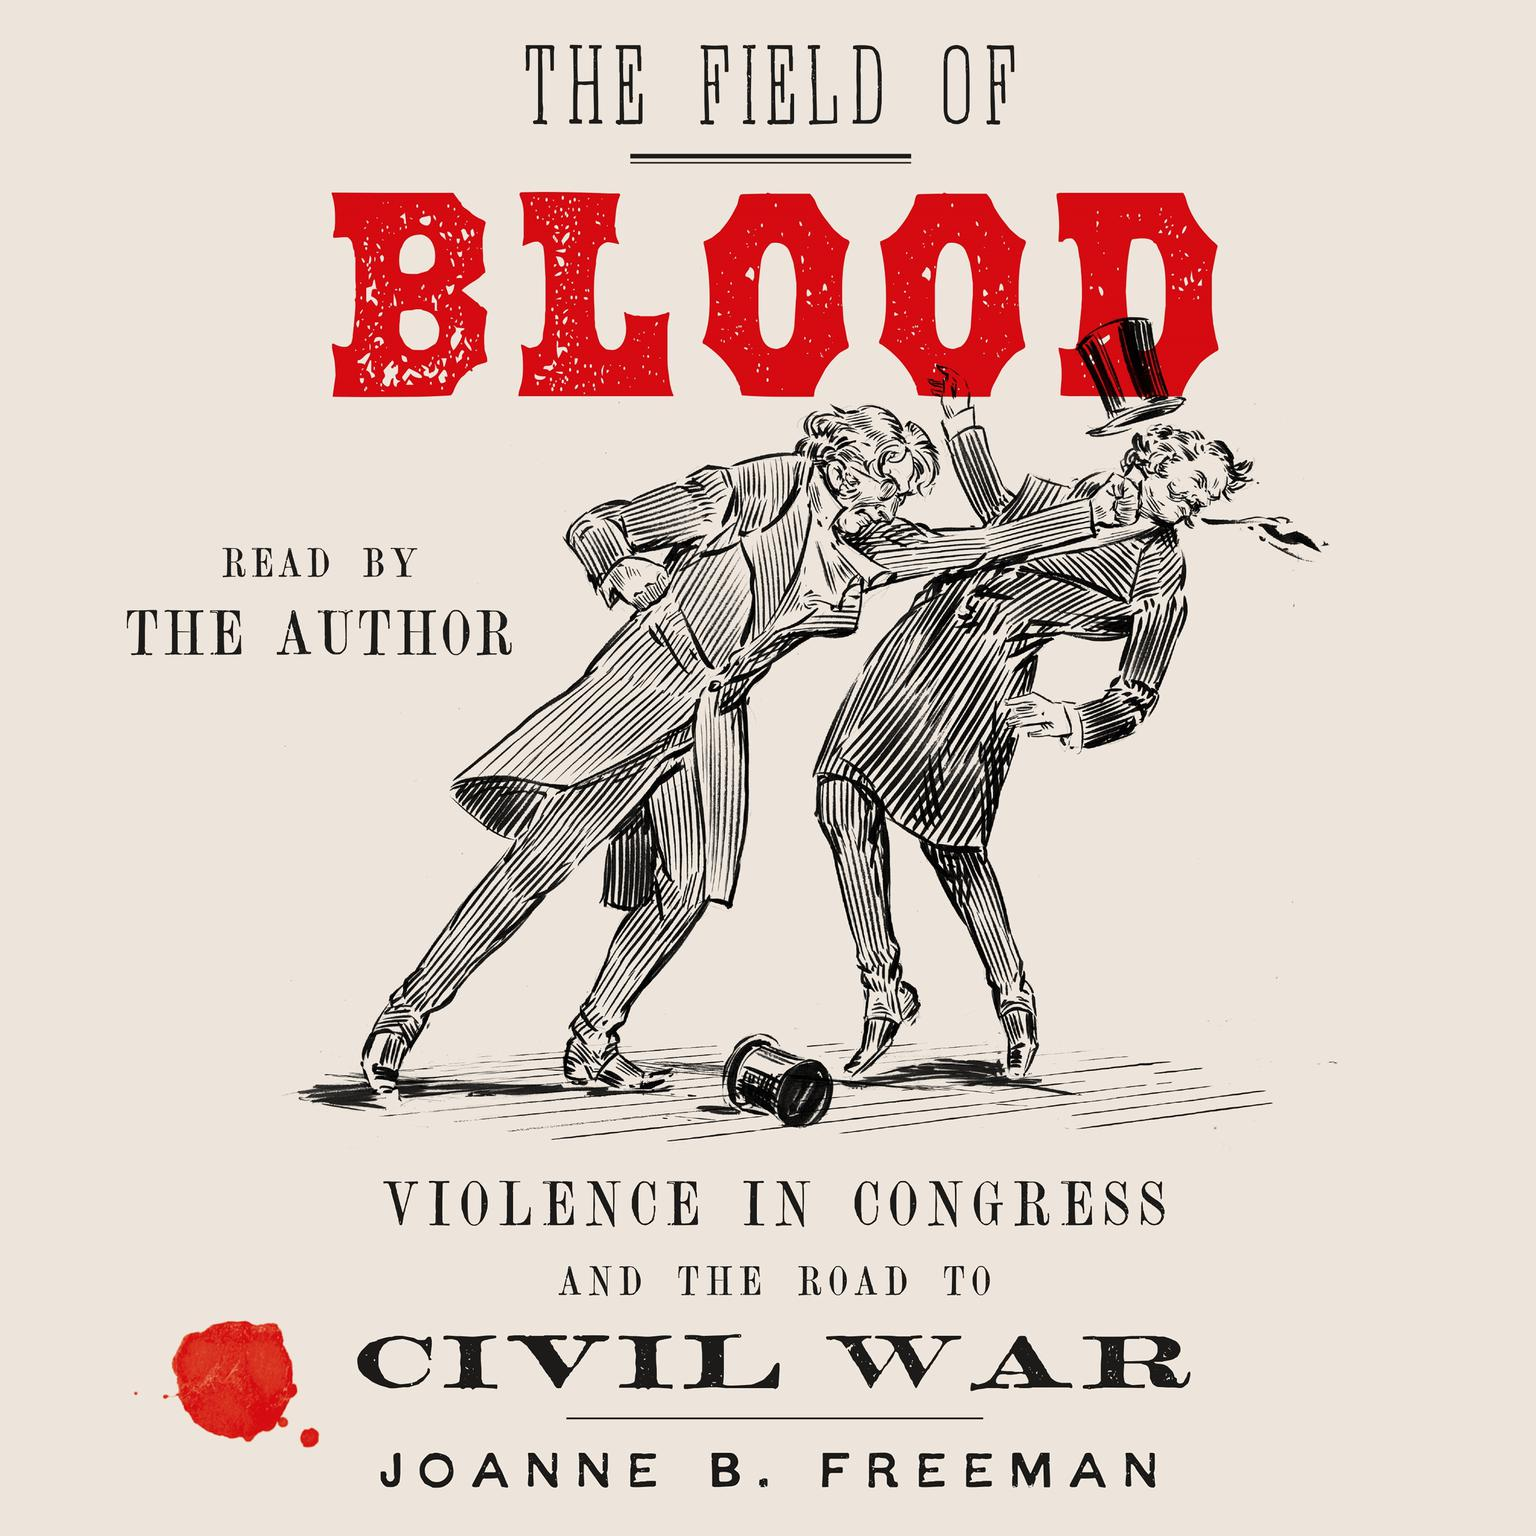 the field of blood violence in congress and the road to civil war